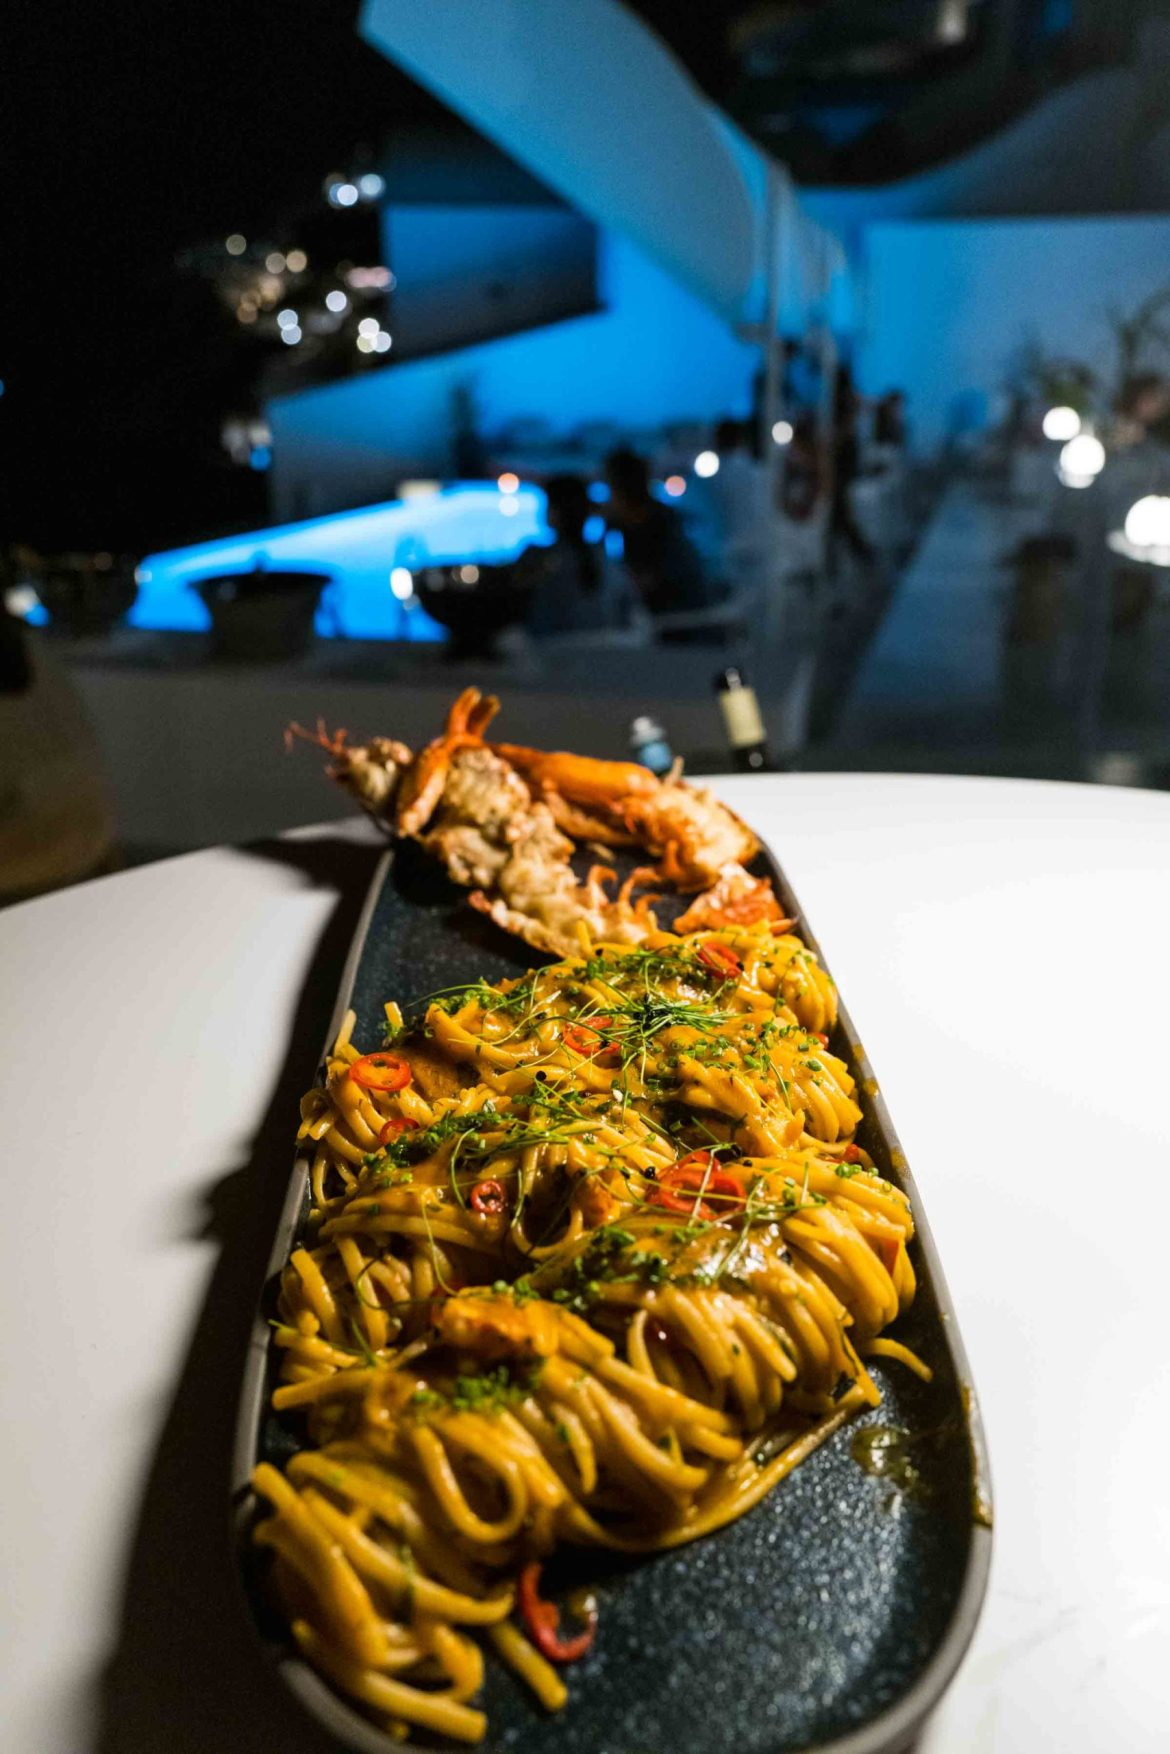 Chef Polychronis Damalas at Saint Suites Hotel Santorini Greece's lobster pasta for two